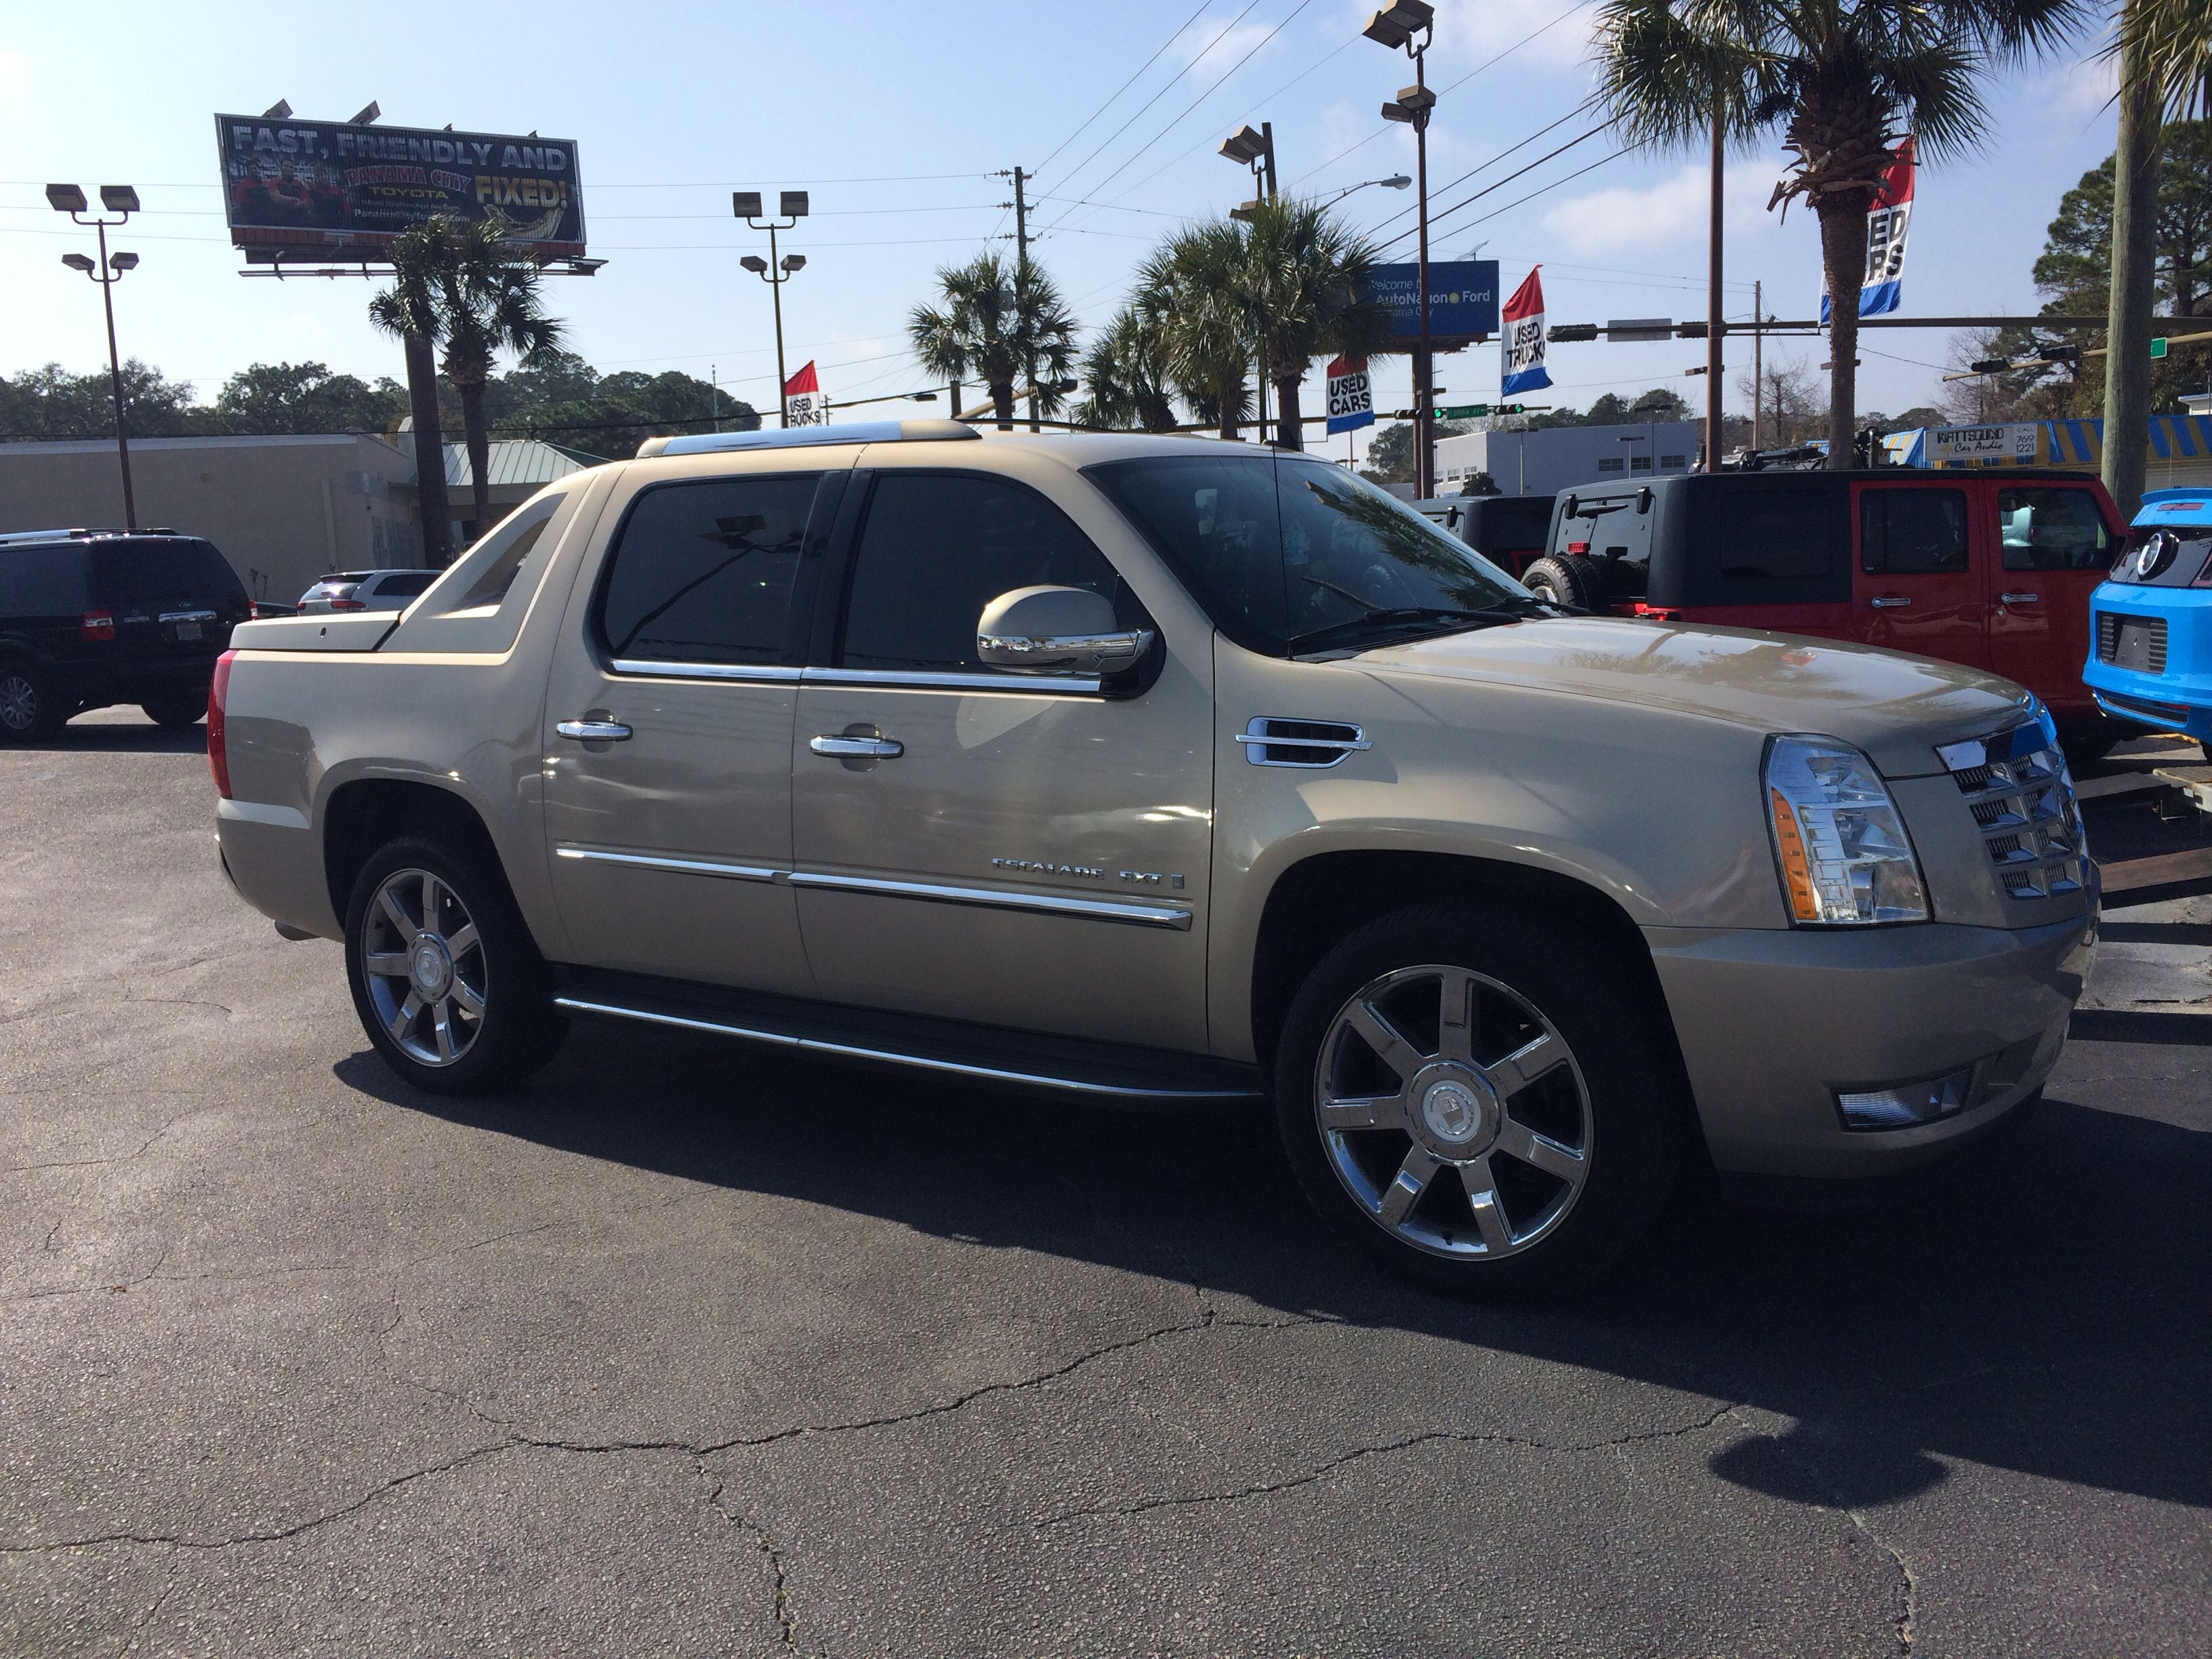 ext truck house escalade a of sale cadillac at auction for image luxury vicari pickup auctions